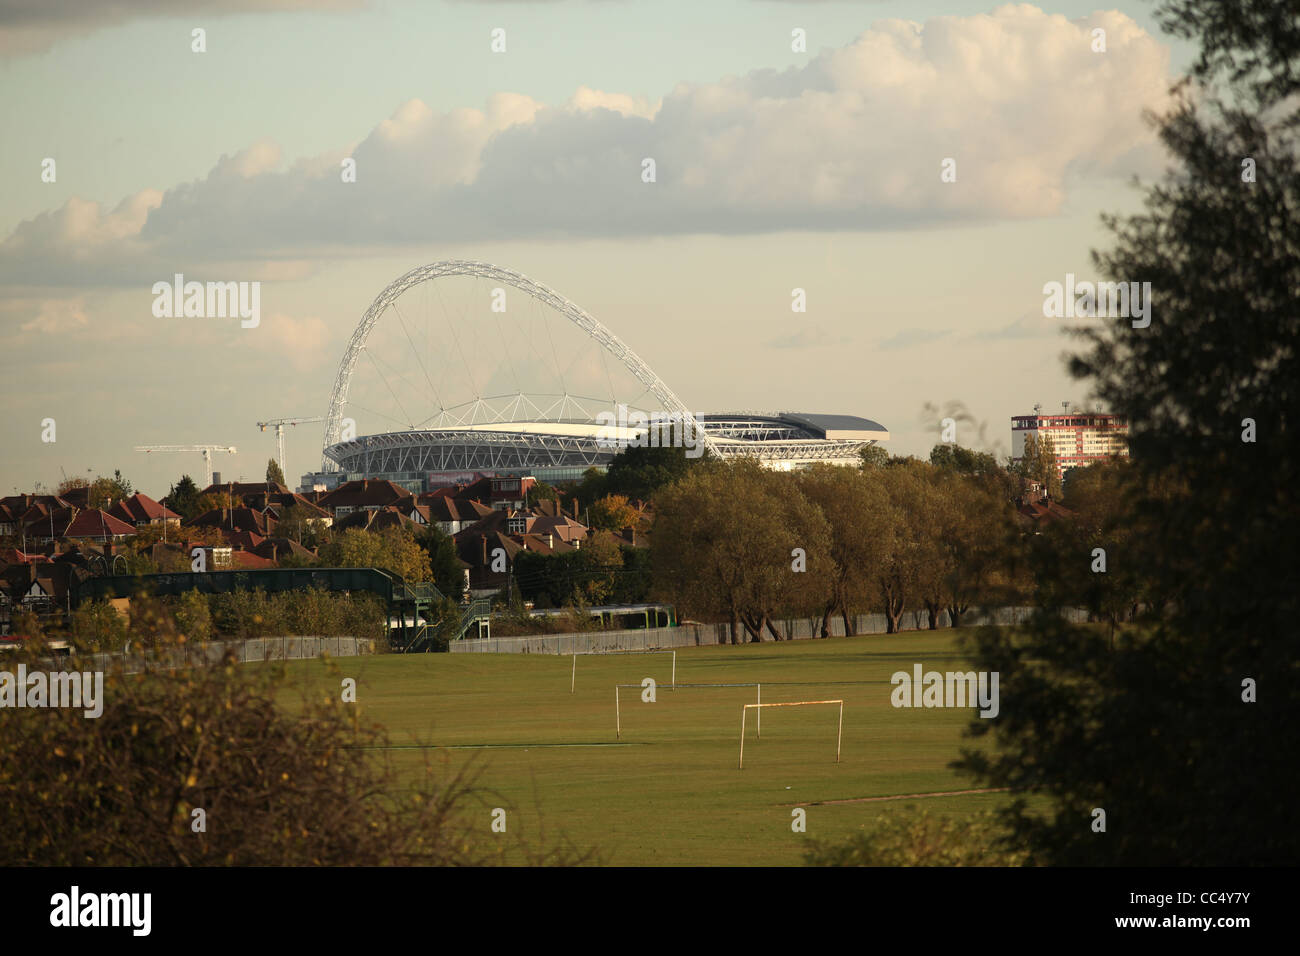 A view of Wembley Stadium with football pitches in foreground - Stock Image